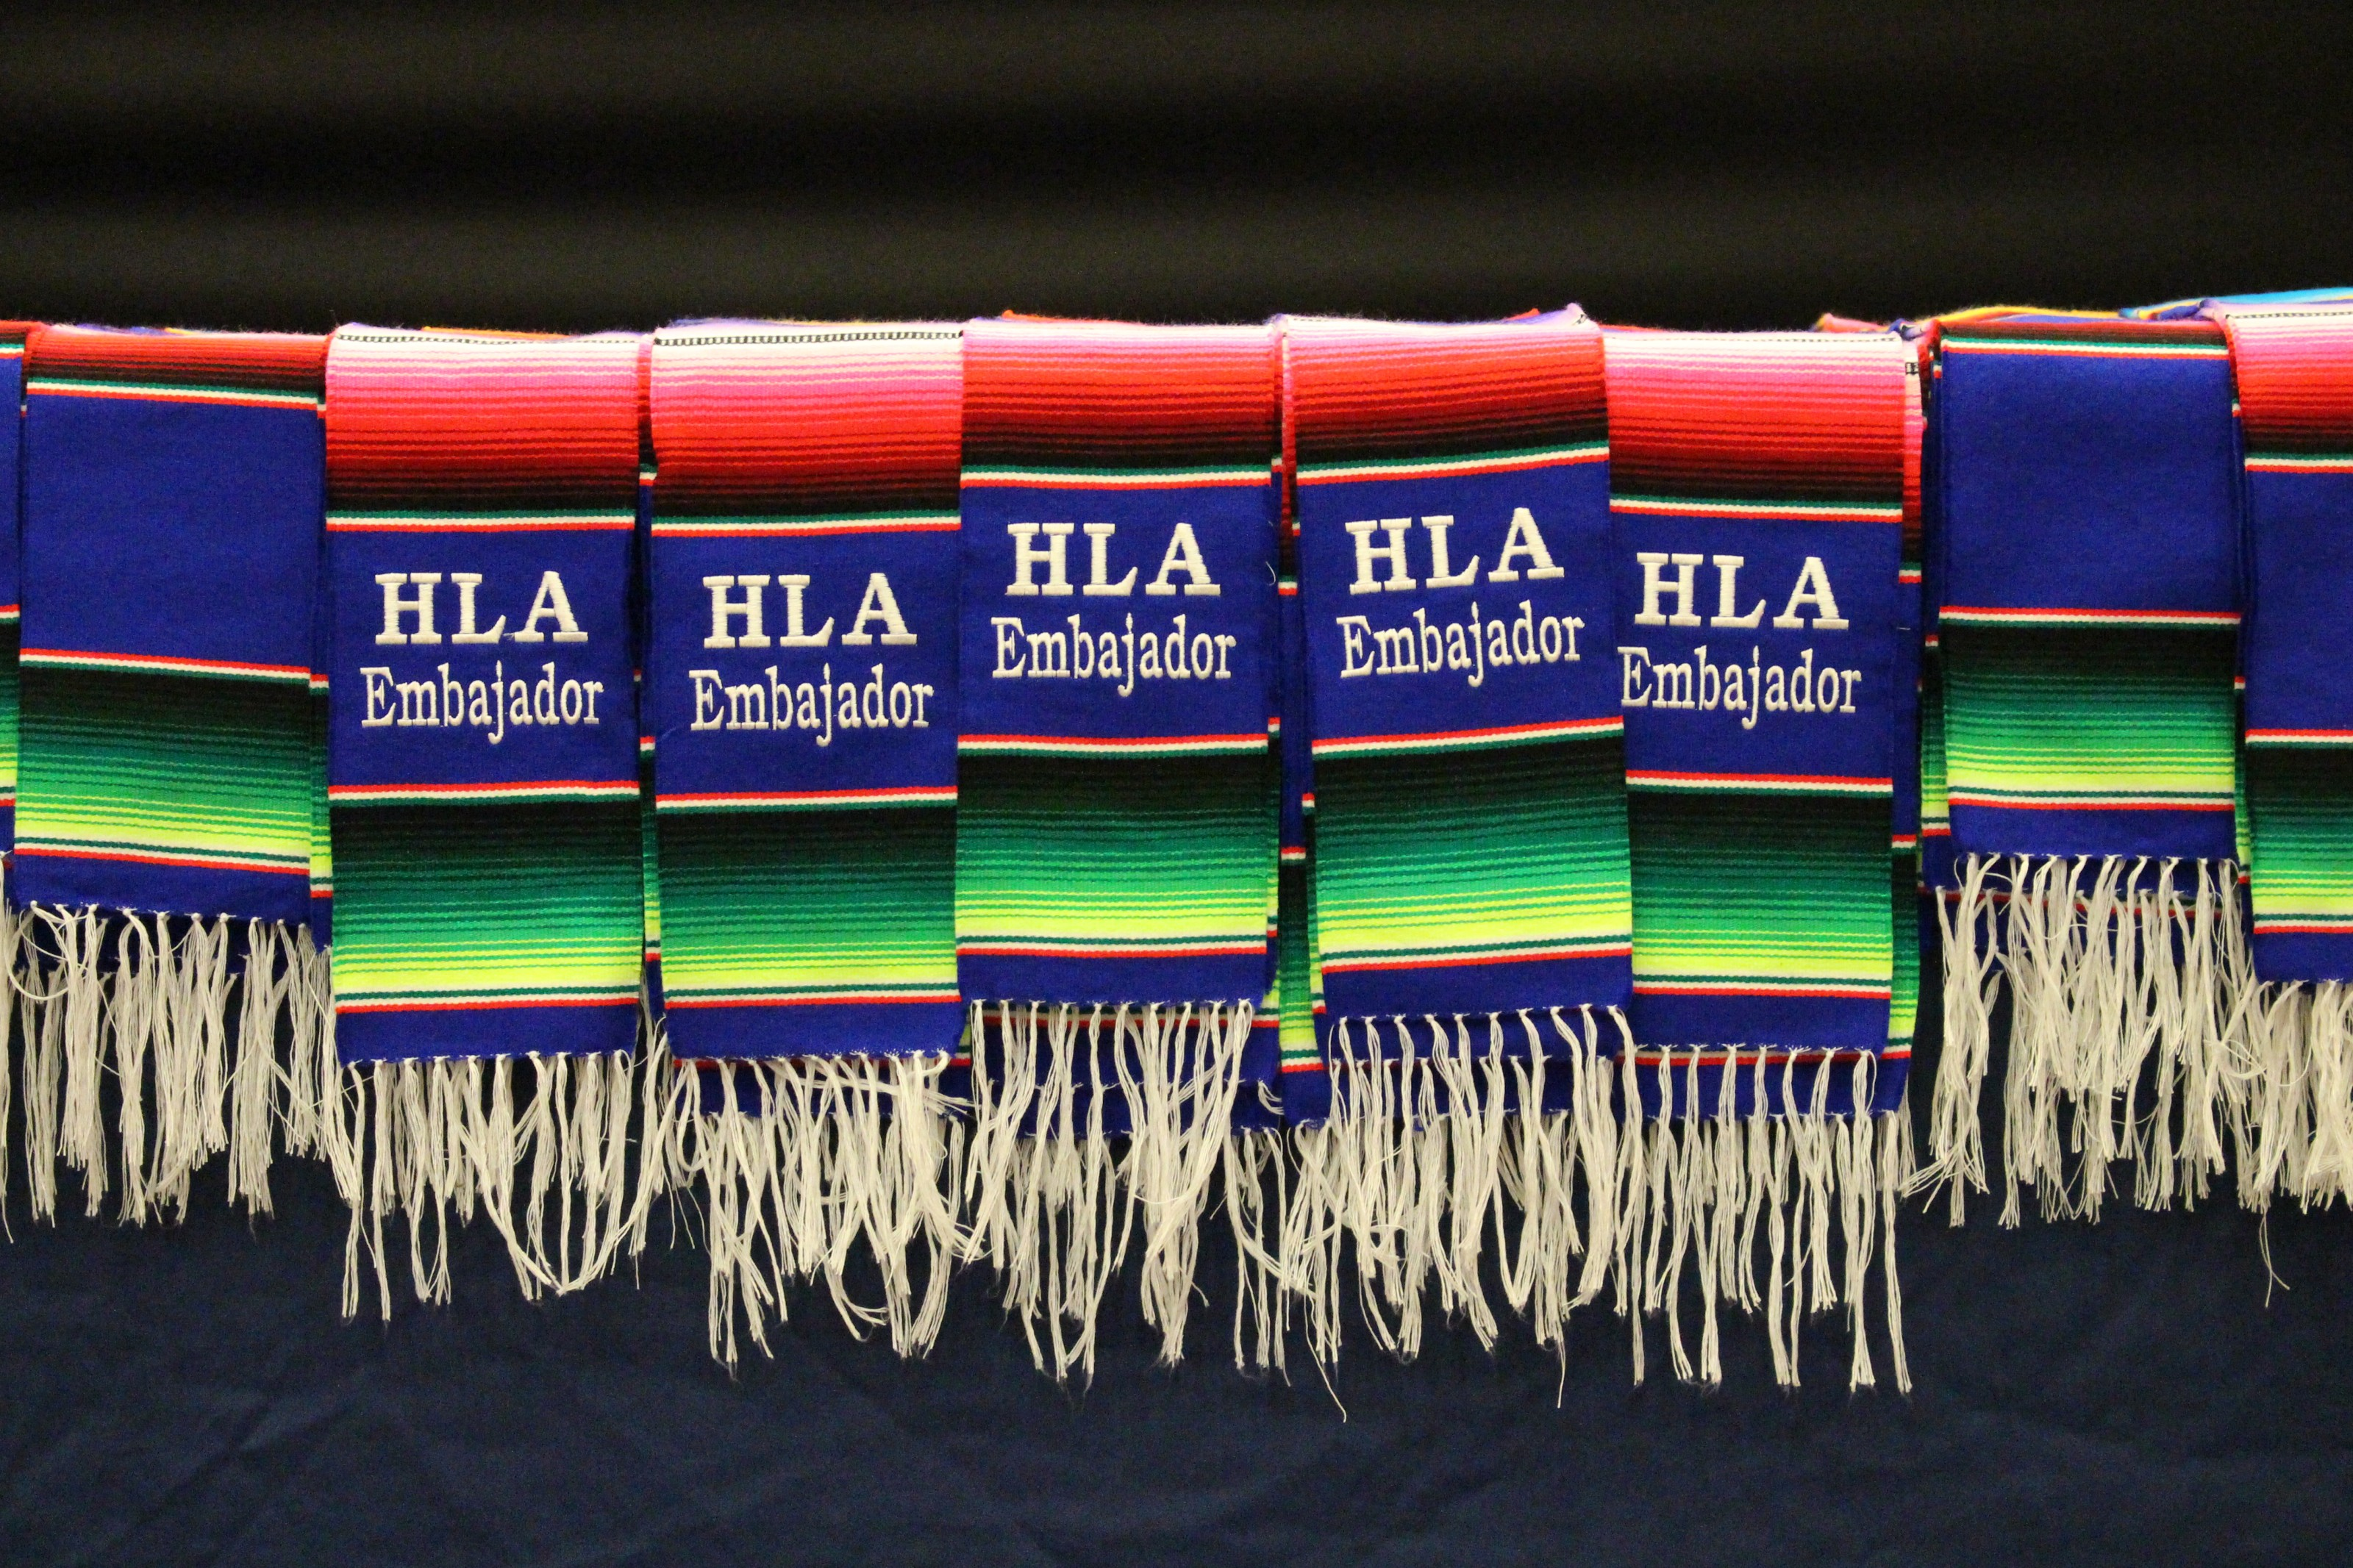 Serape style graduation stoles with embroidery reading HLA Embajador